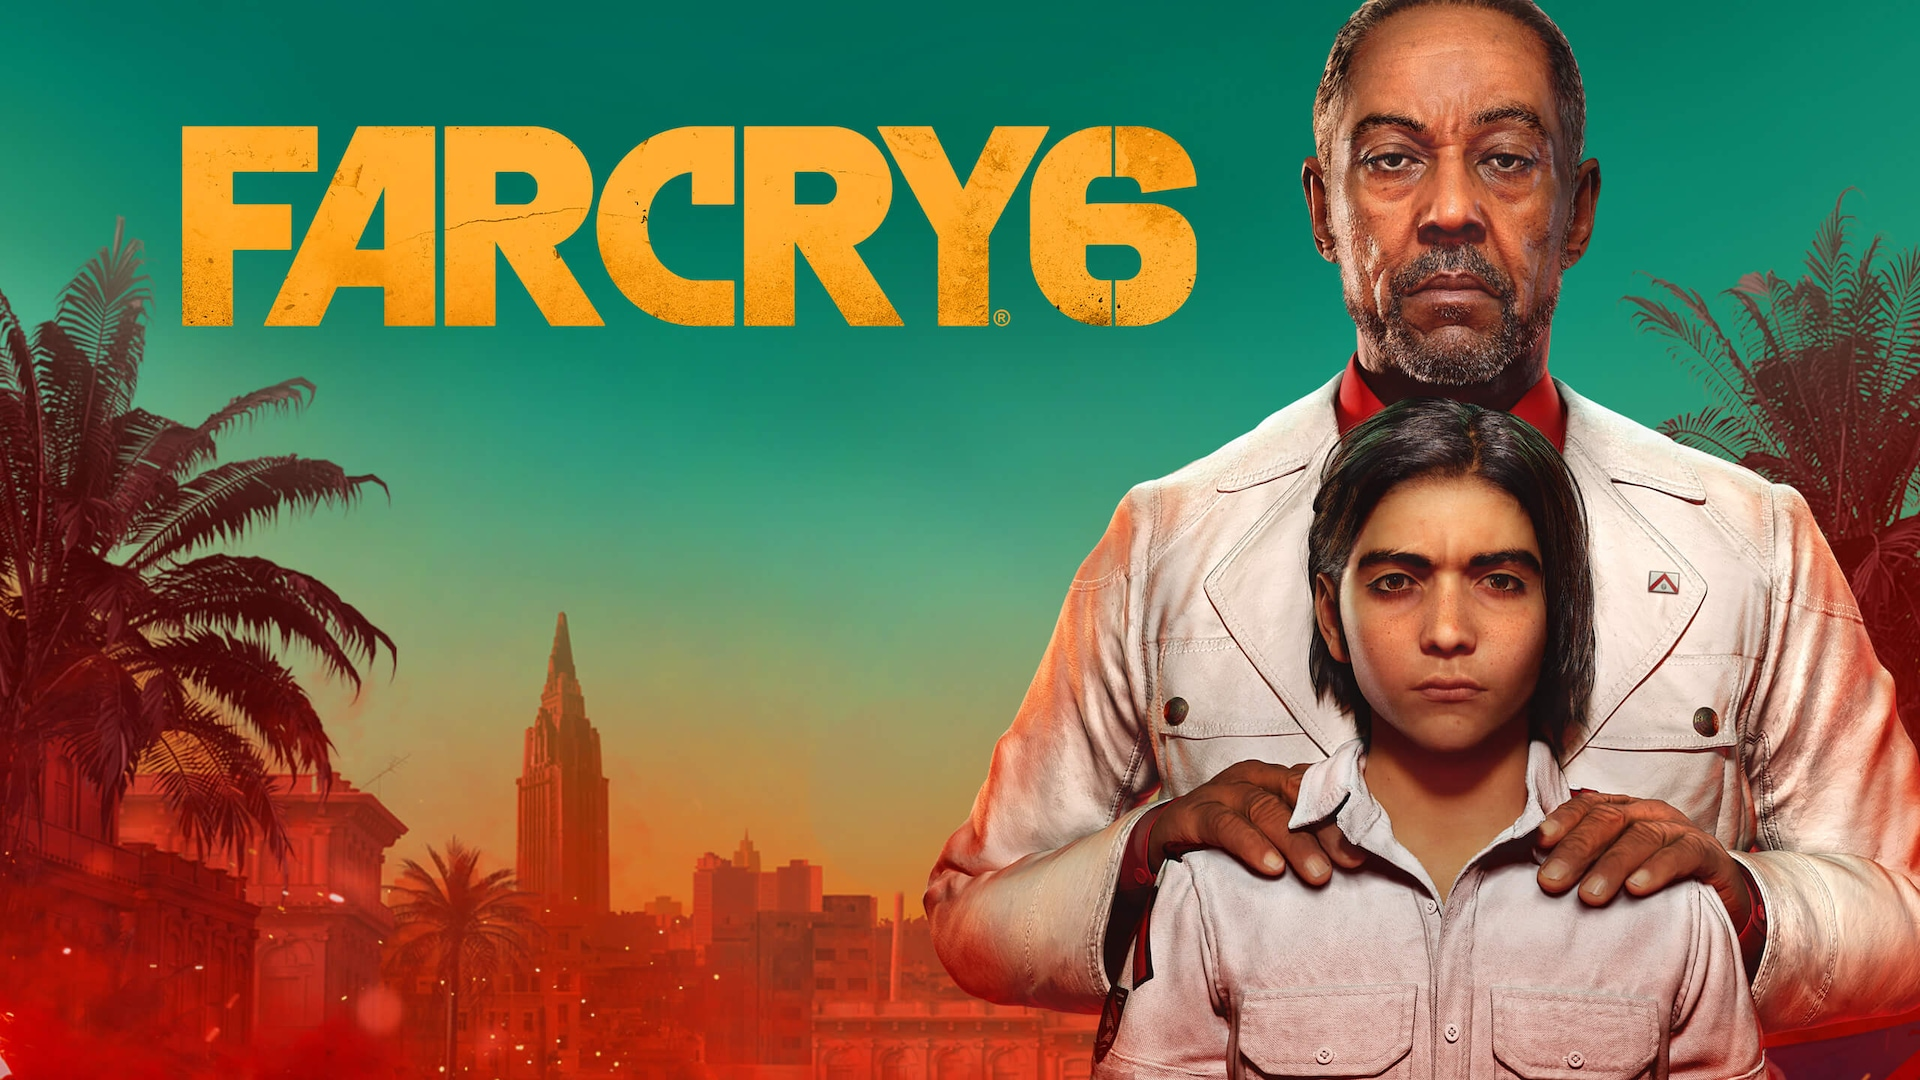 Pre-purchase Far Cry 6 on Epic Games Store